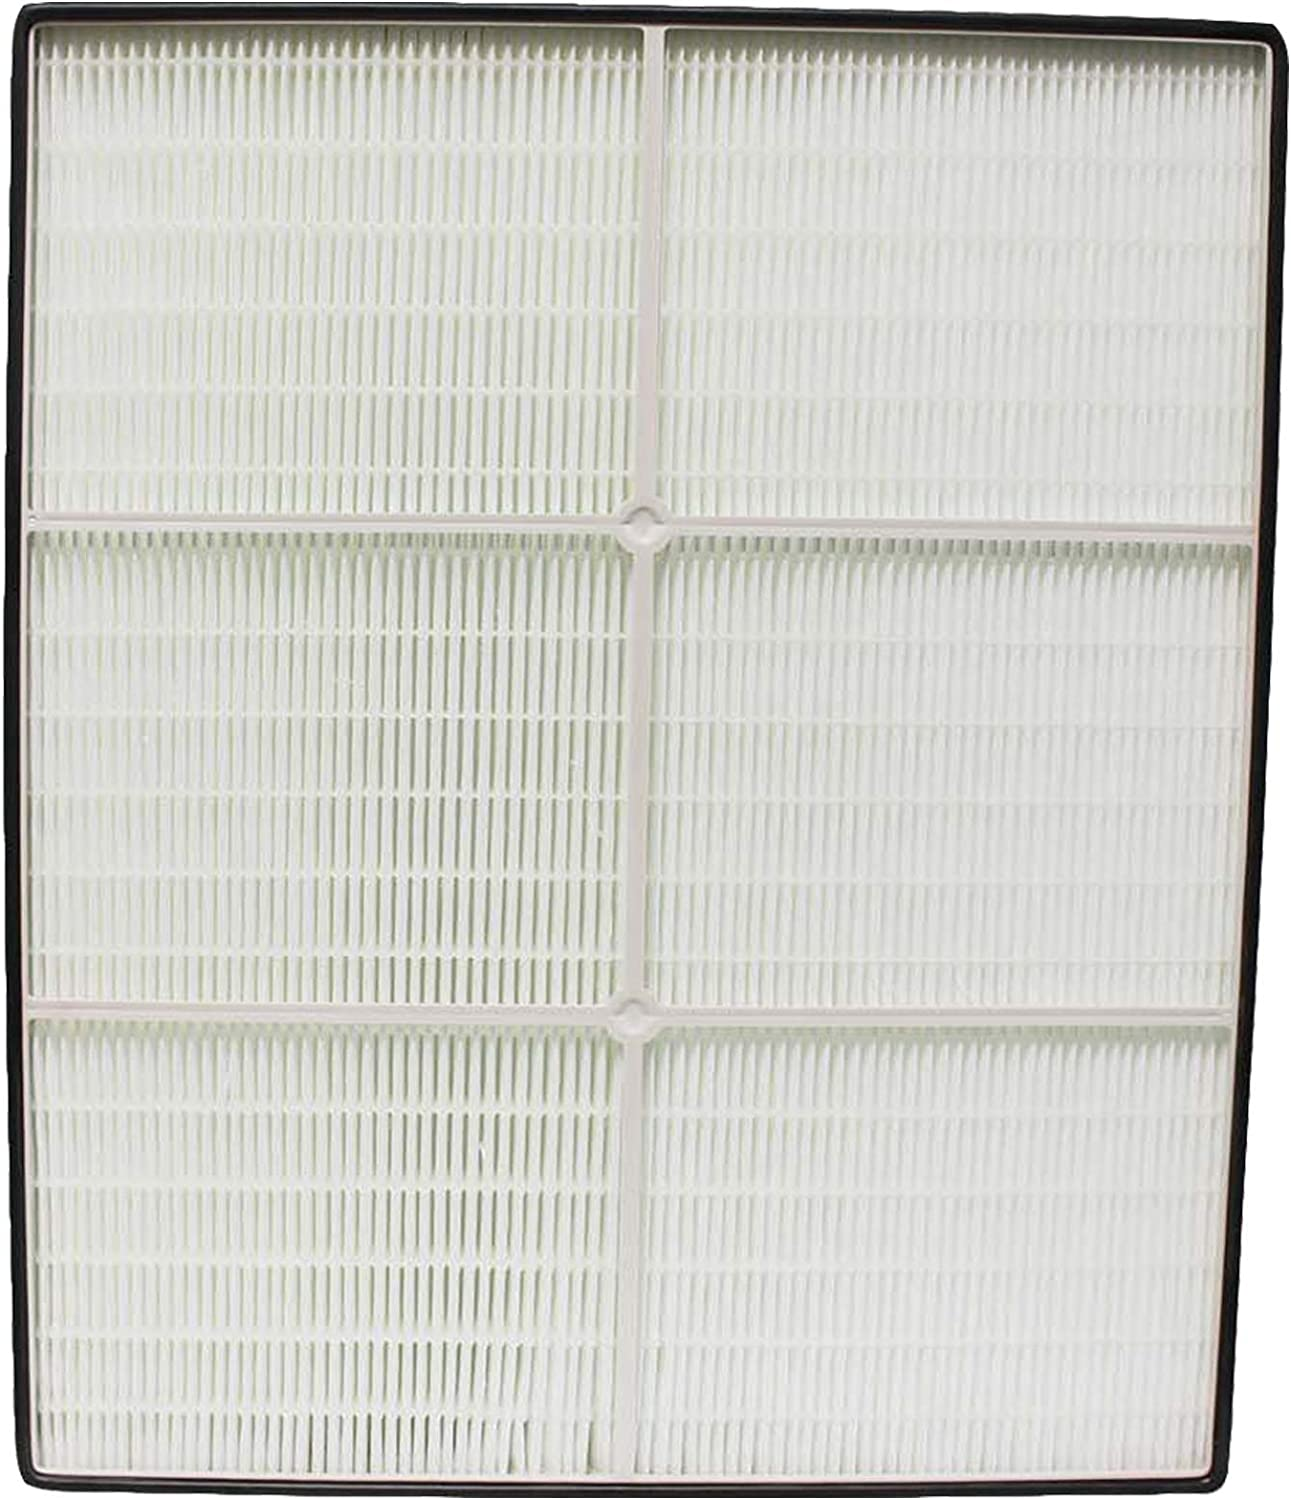 Amazon Com Crucial Air Replacement Air Purifier Filter Compatible With Kenmore Part 83375 83376 Fits Kenmore Model Progressive 295 335 Series 83200 83202 83230 Bulk 1 Pack Health Personal Care